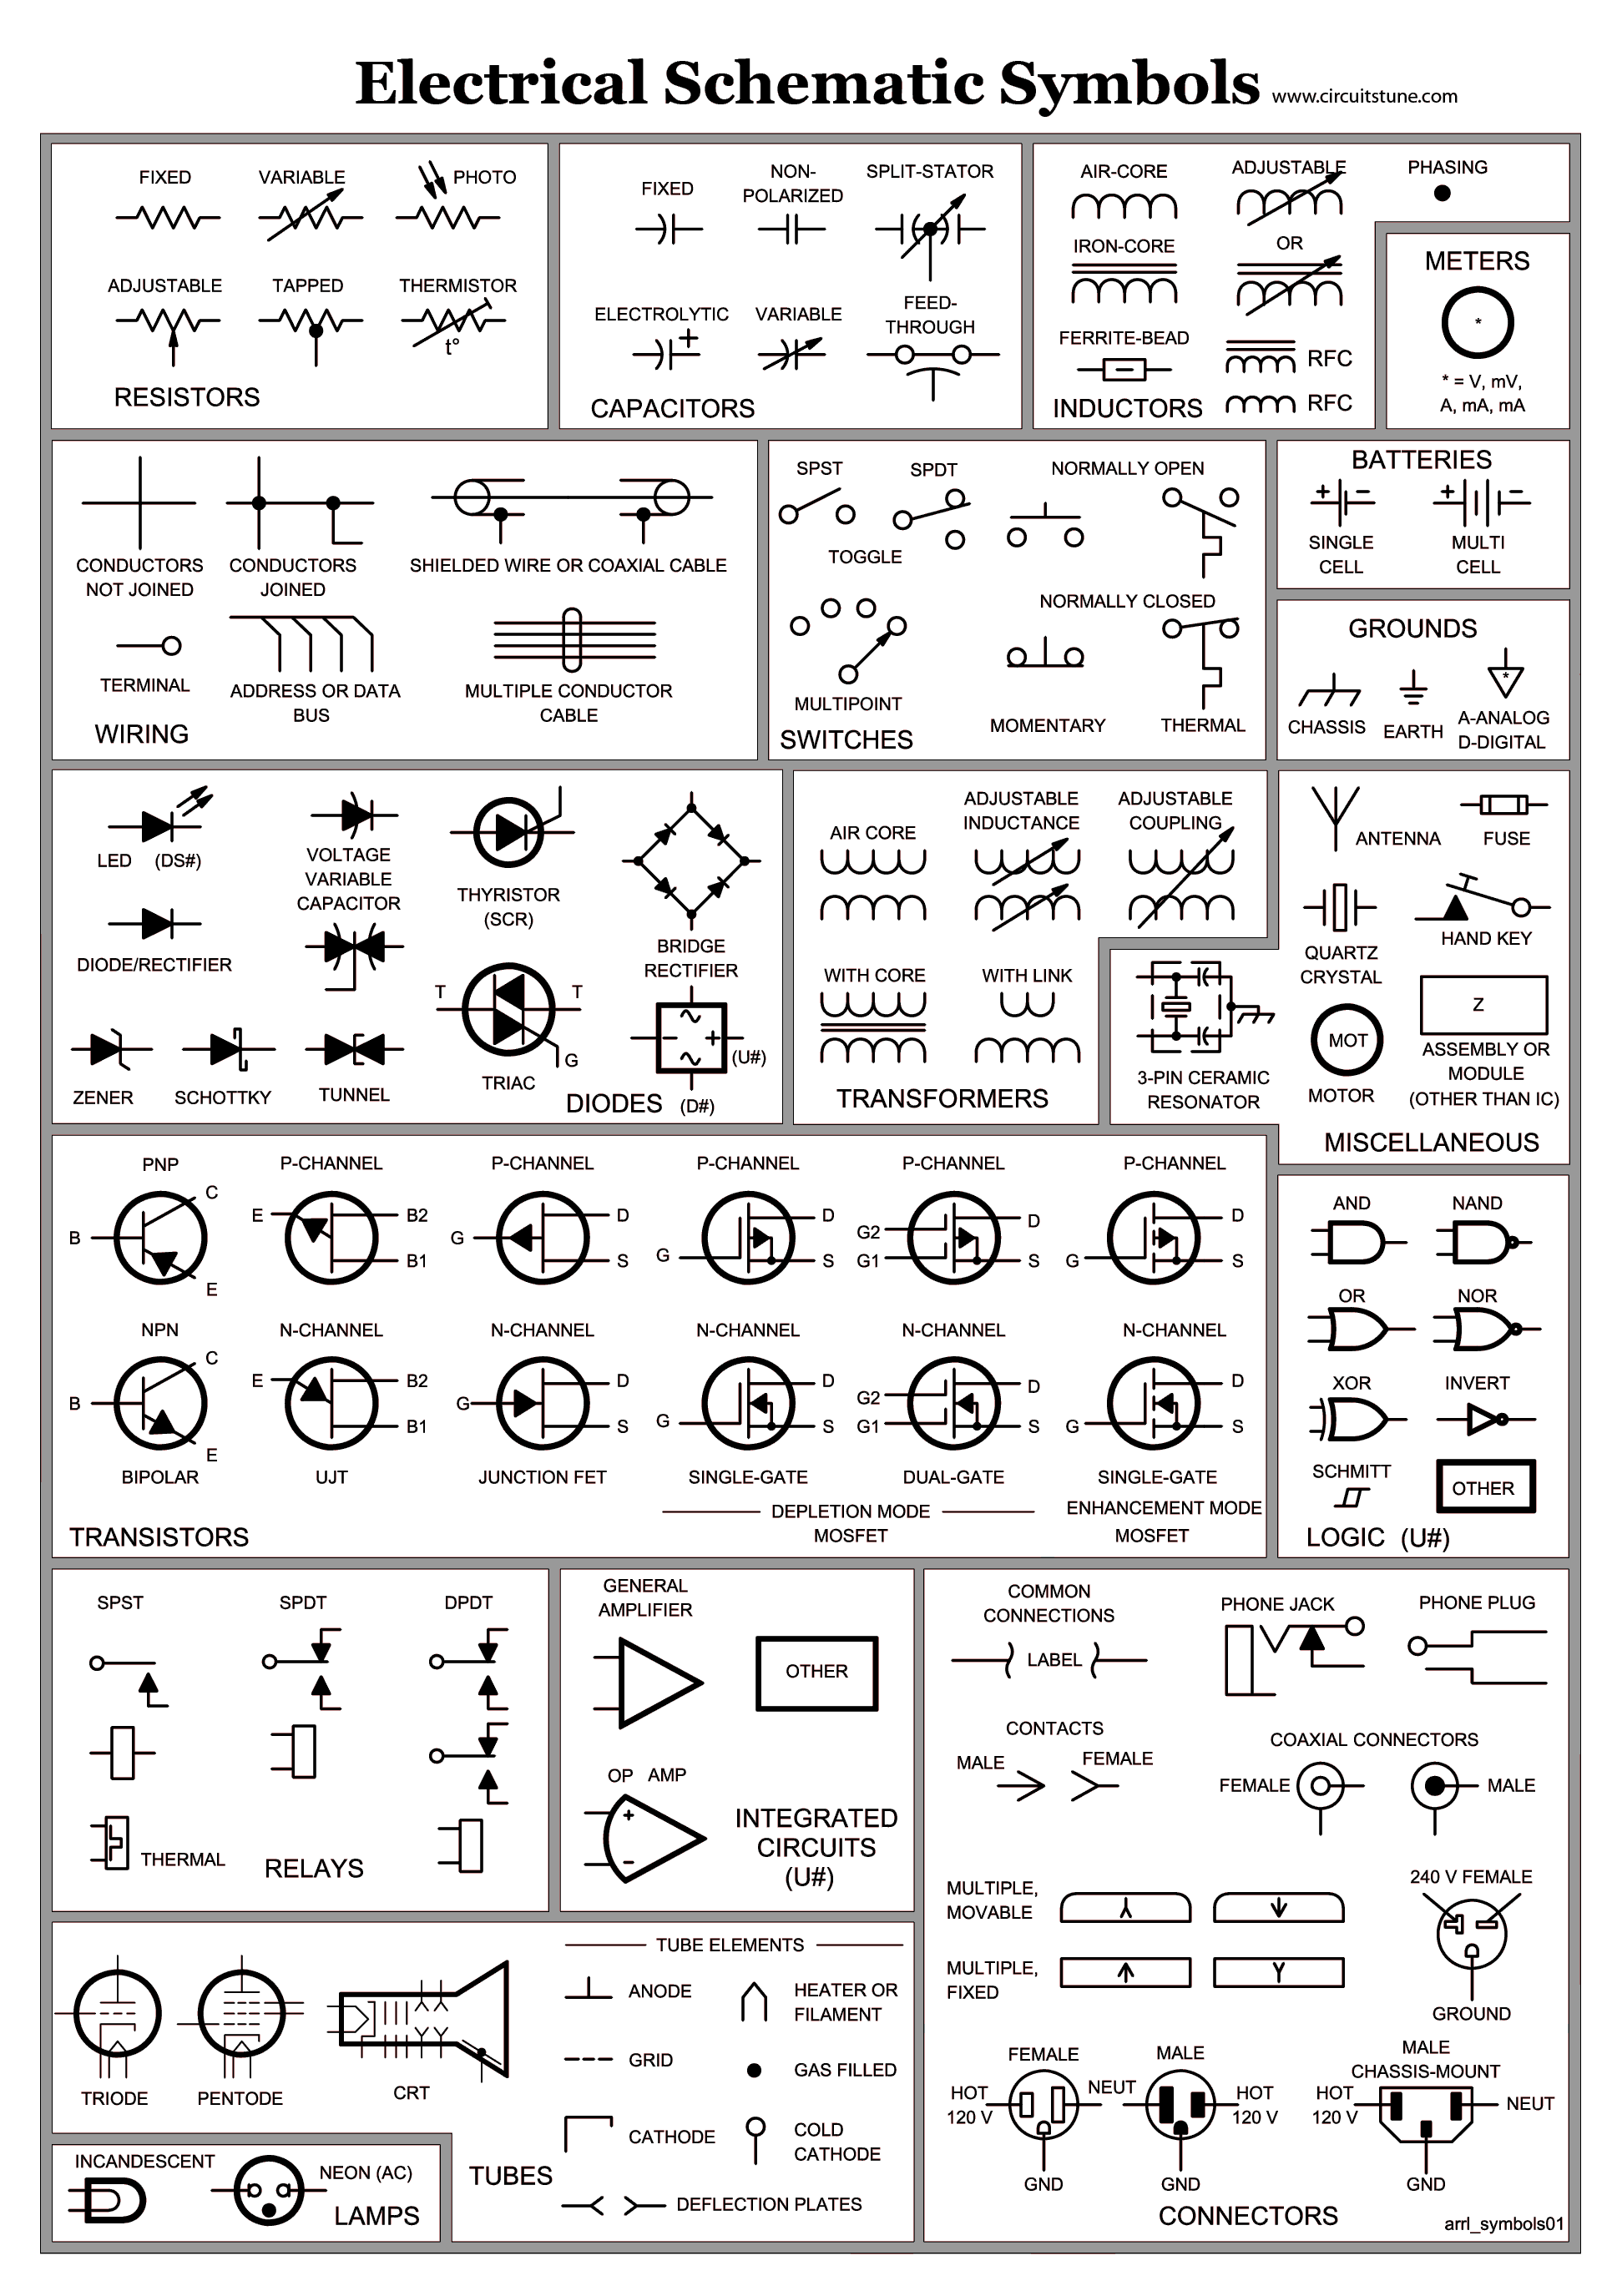 Electrical Schematic Symbols Electrical Symbols, Electrical Wiring Diagram,  Electrical Components, Electronic Engineering,